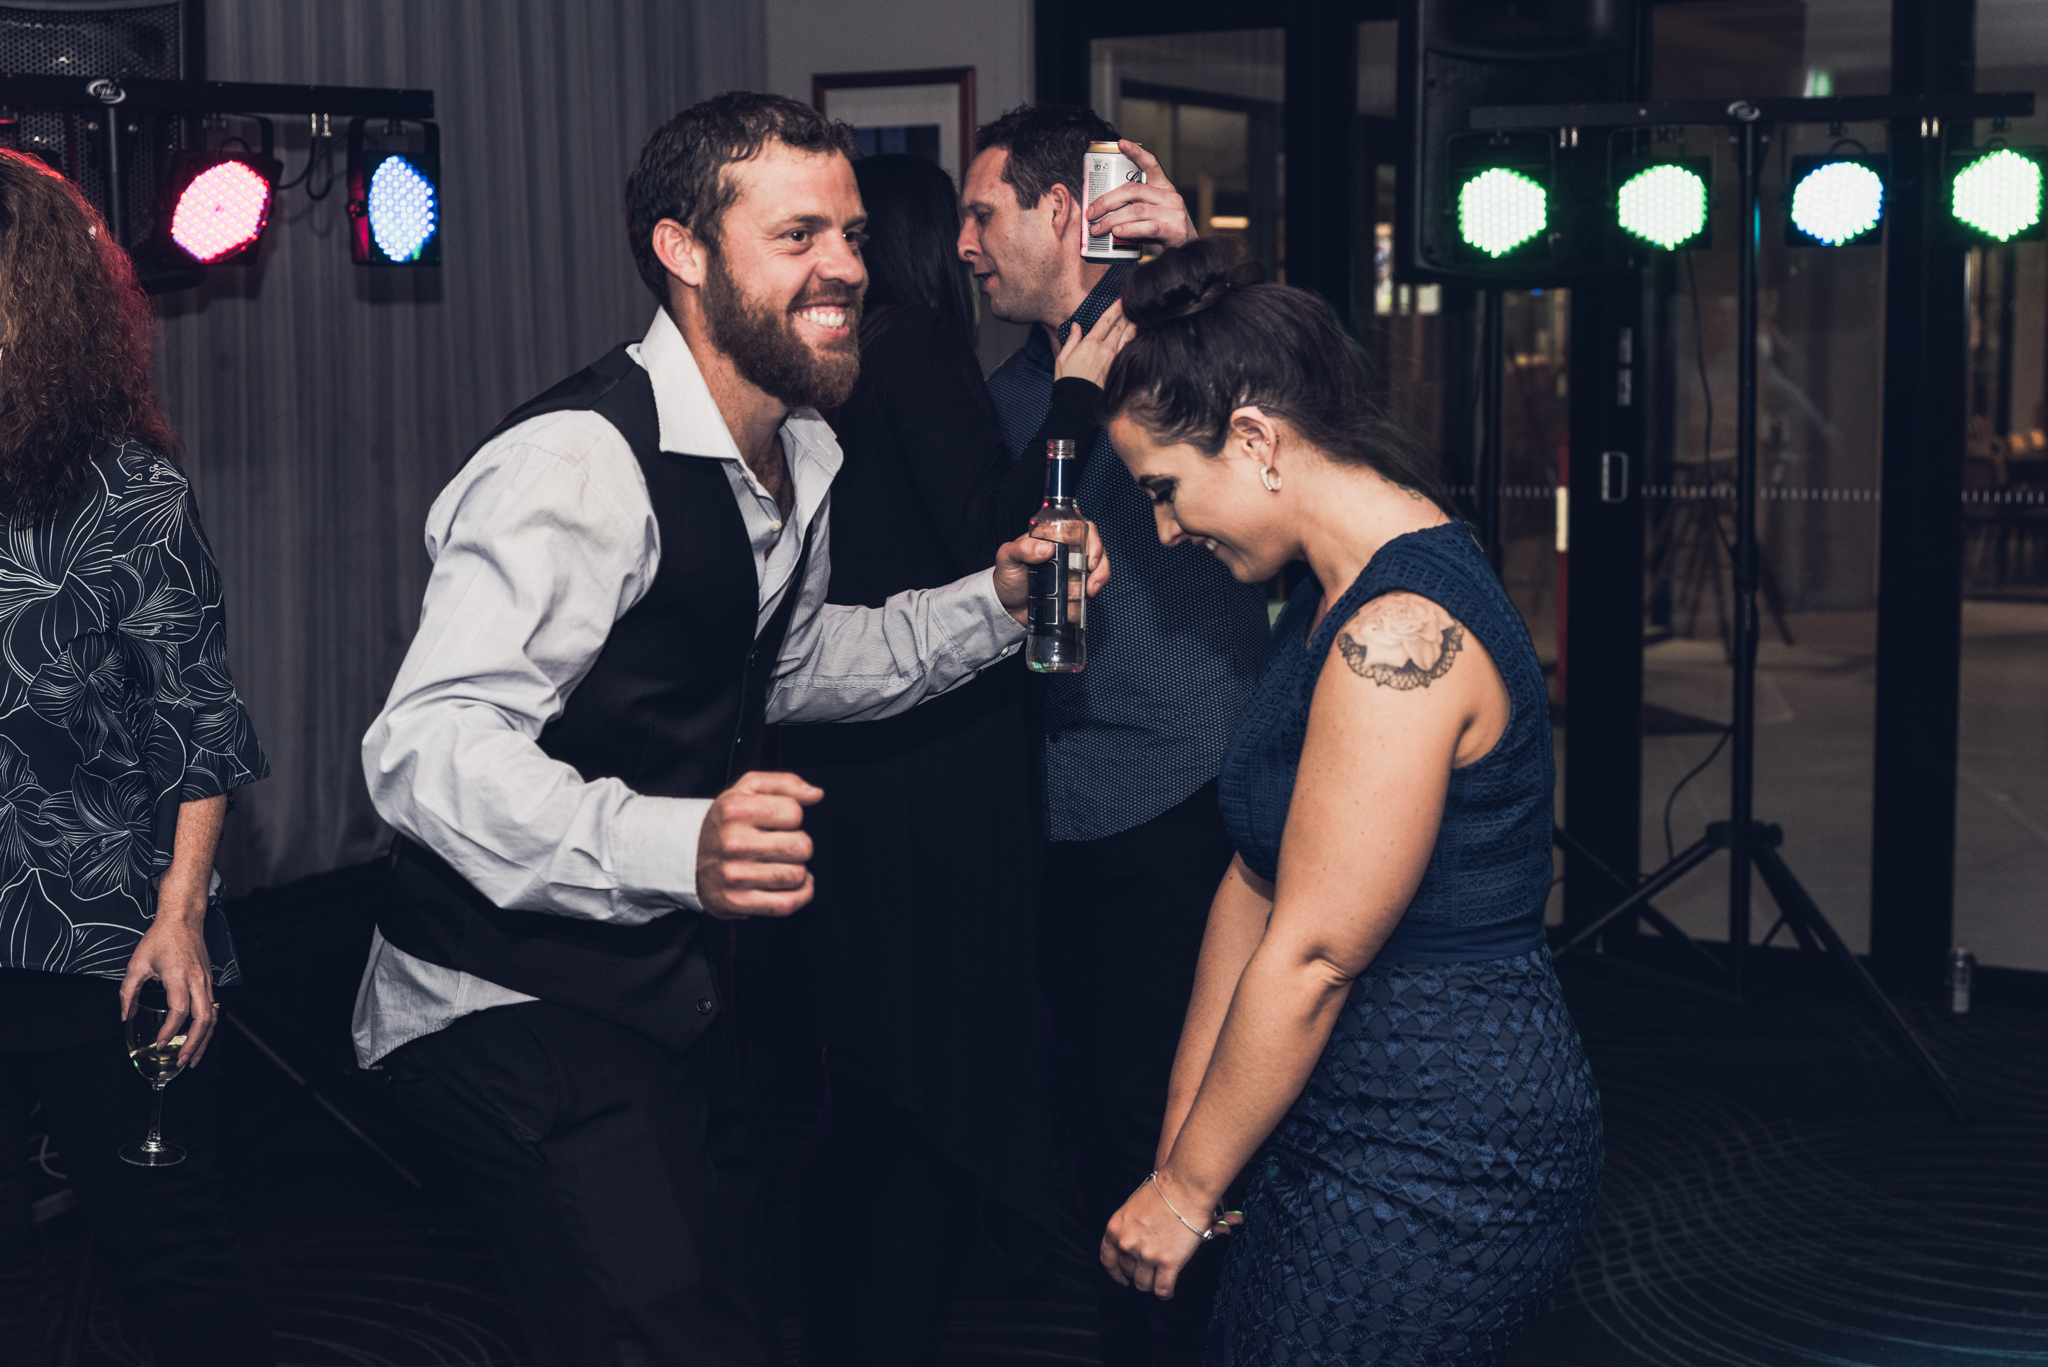 Events - Do you want to capture your next social event? that special birthday party? Contact me and we can work it out!min. 2 hours starting @ $280